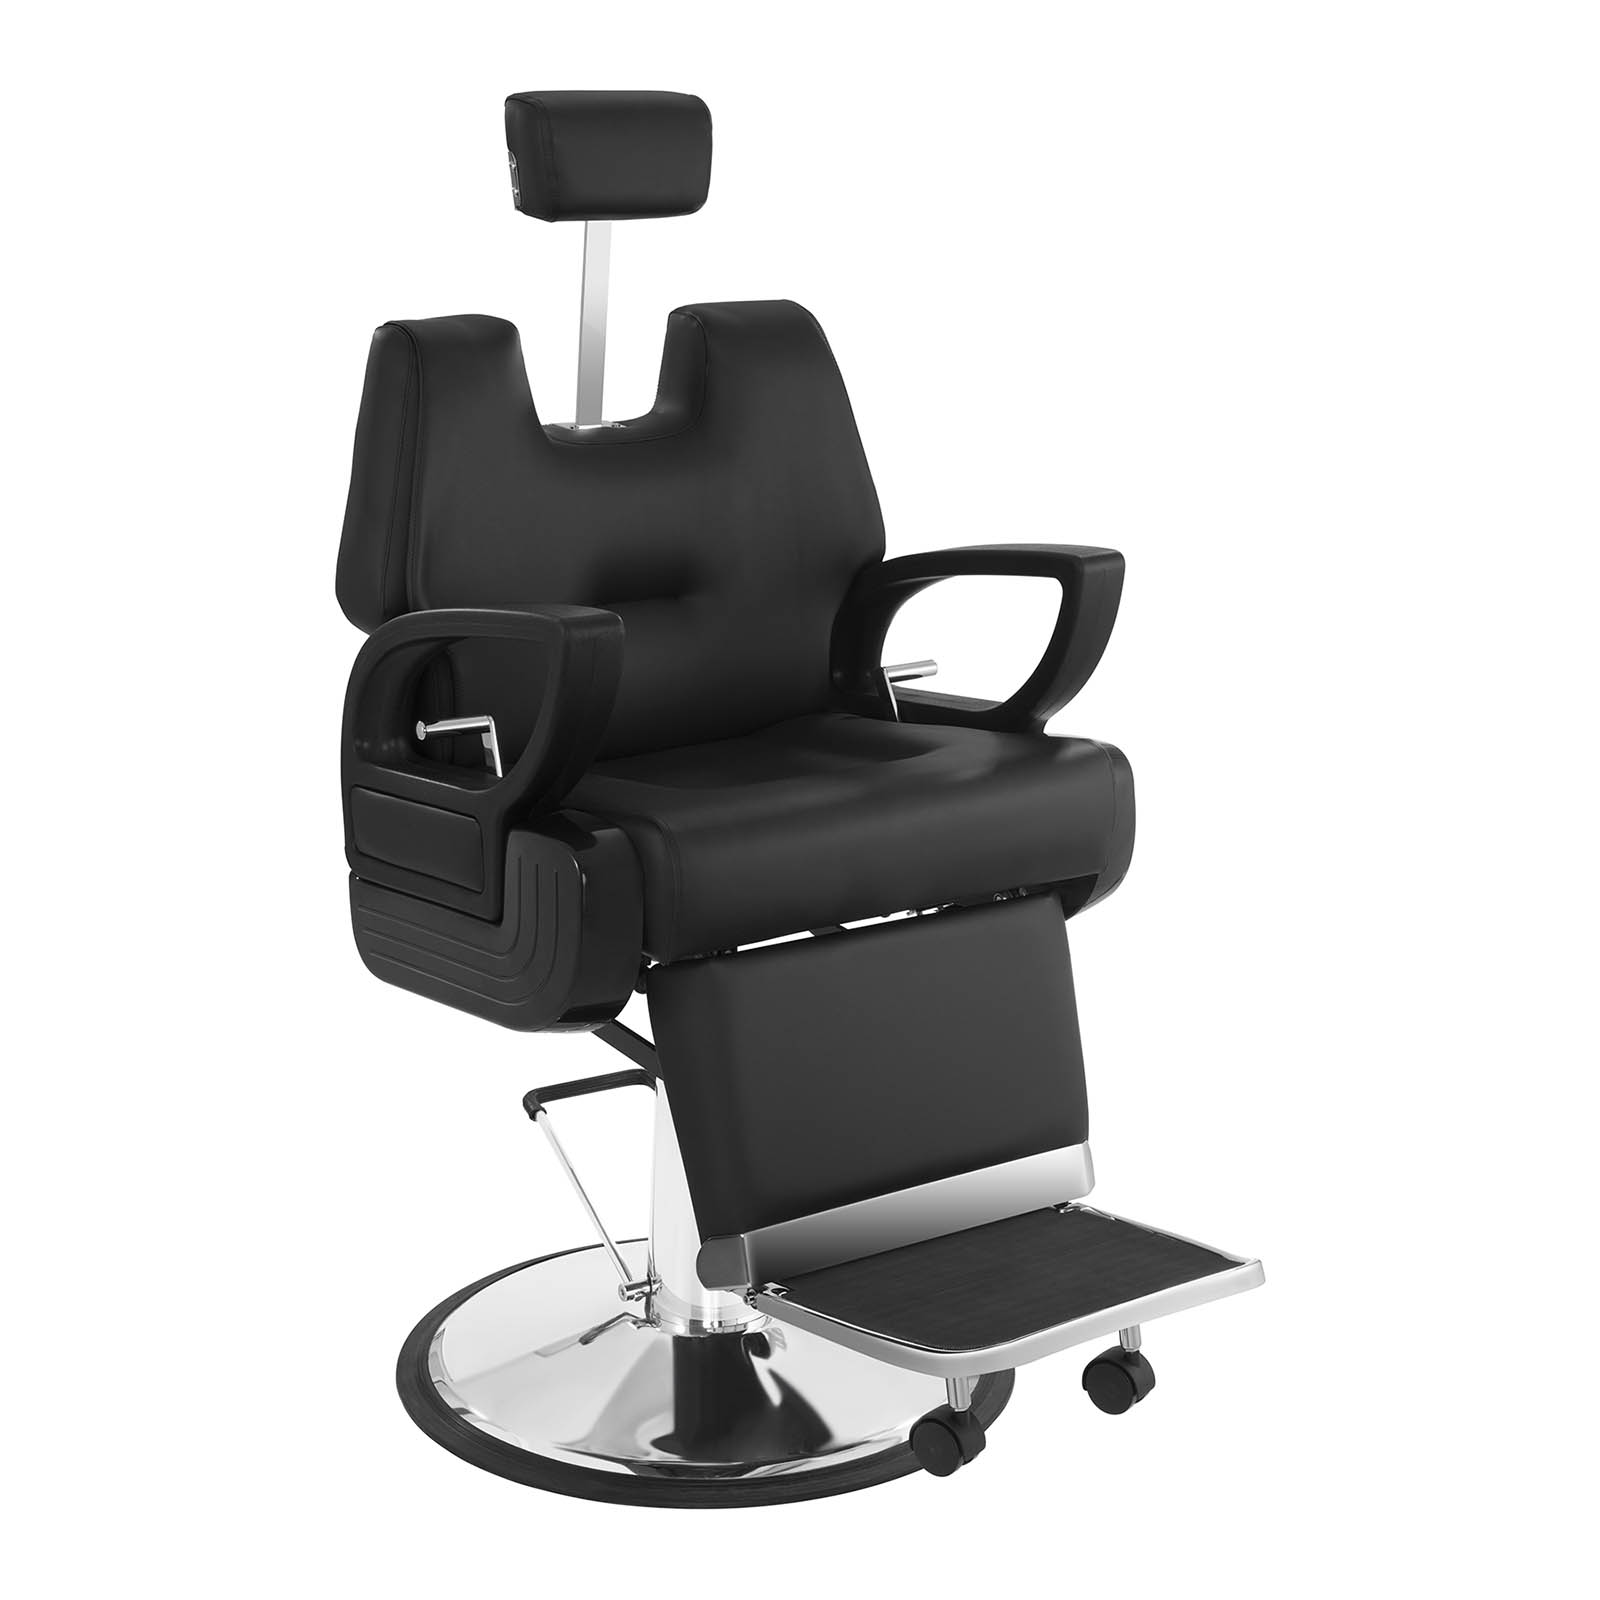 salon chairs ebay celebrity chair accessories barber seat rotatable adjustable hairdresser